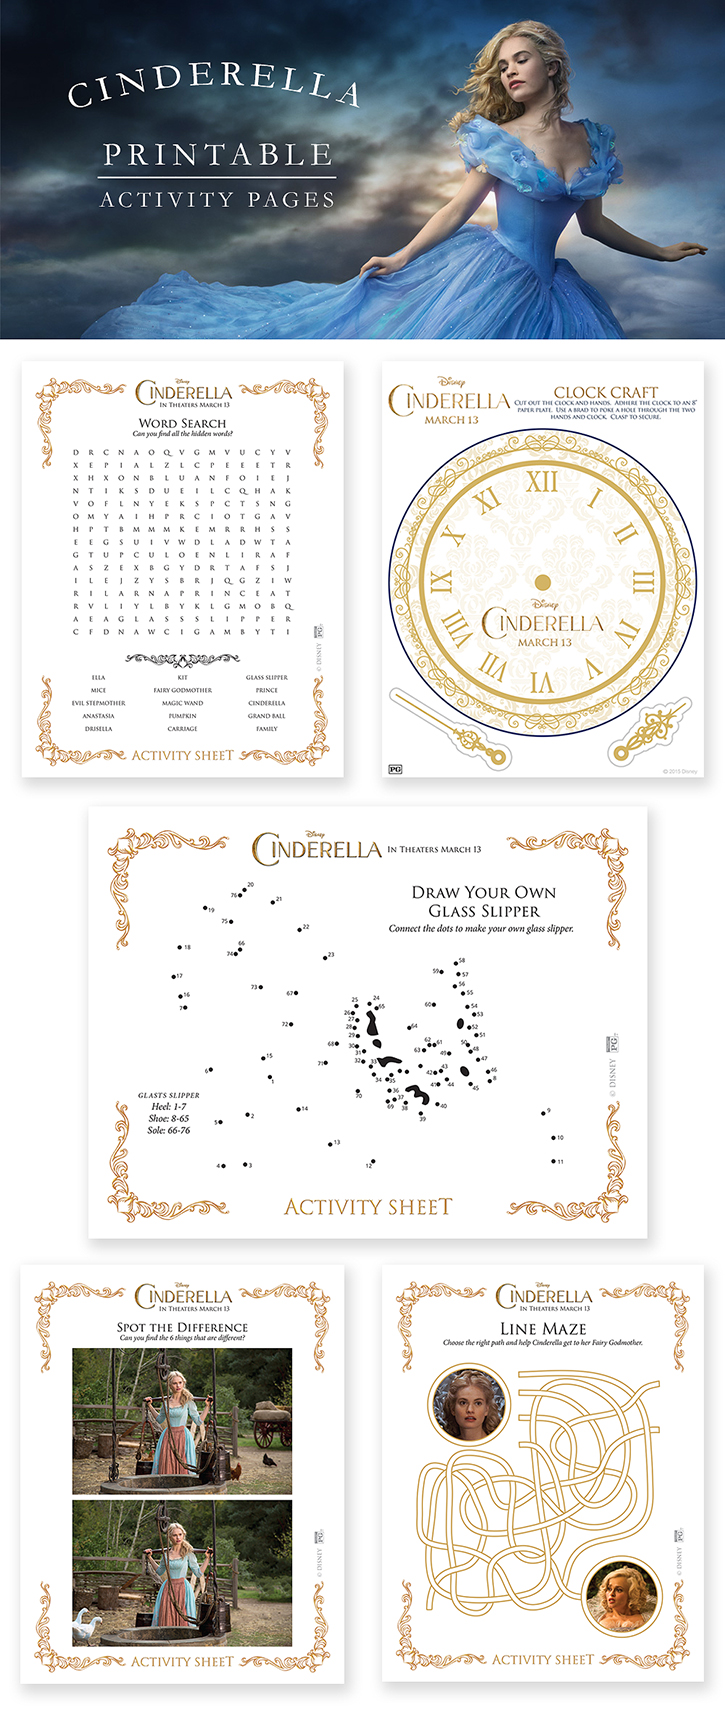 Printable Cinderella activity pages